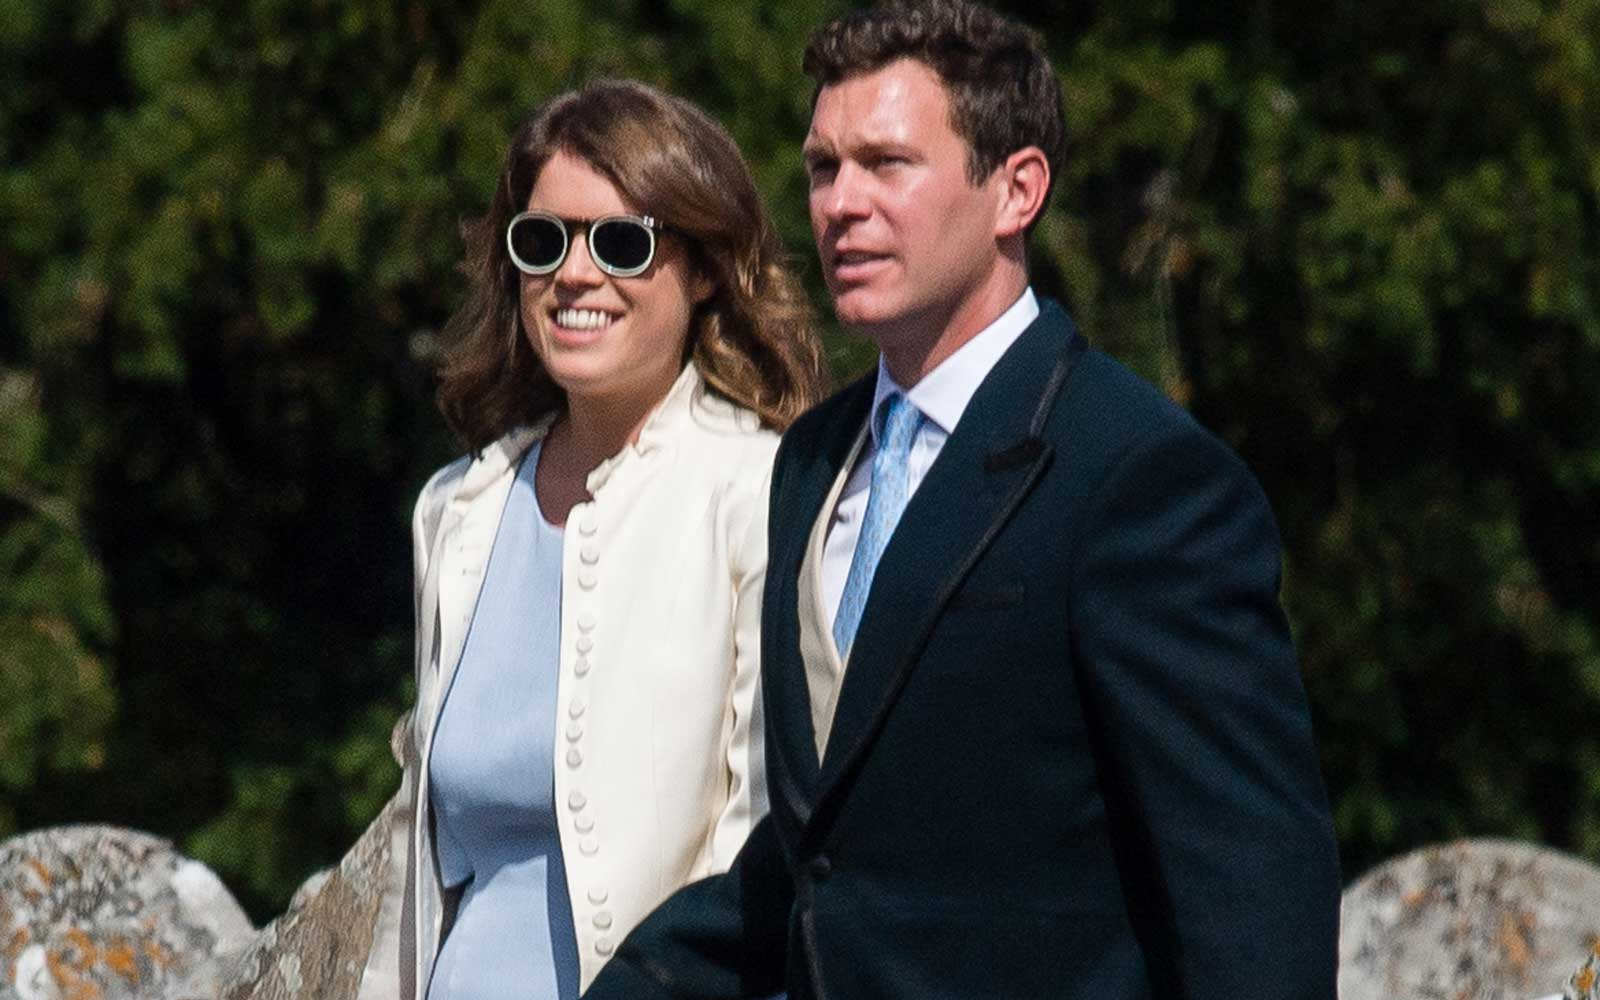 How Princess Eugenie Is Making Her Royal Wedding Bigger Than Harry and Meghan's